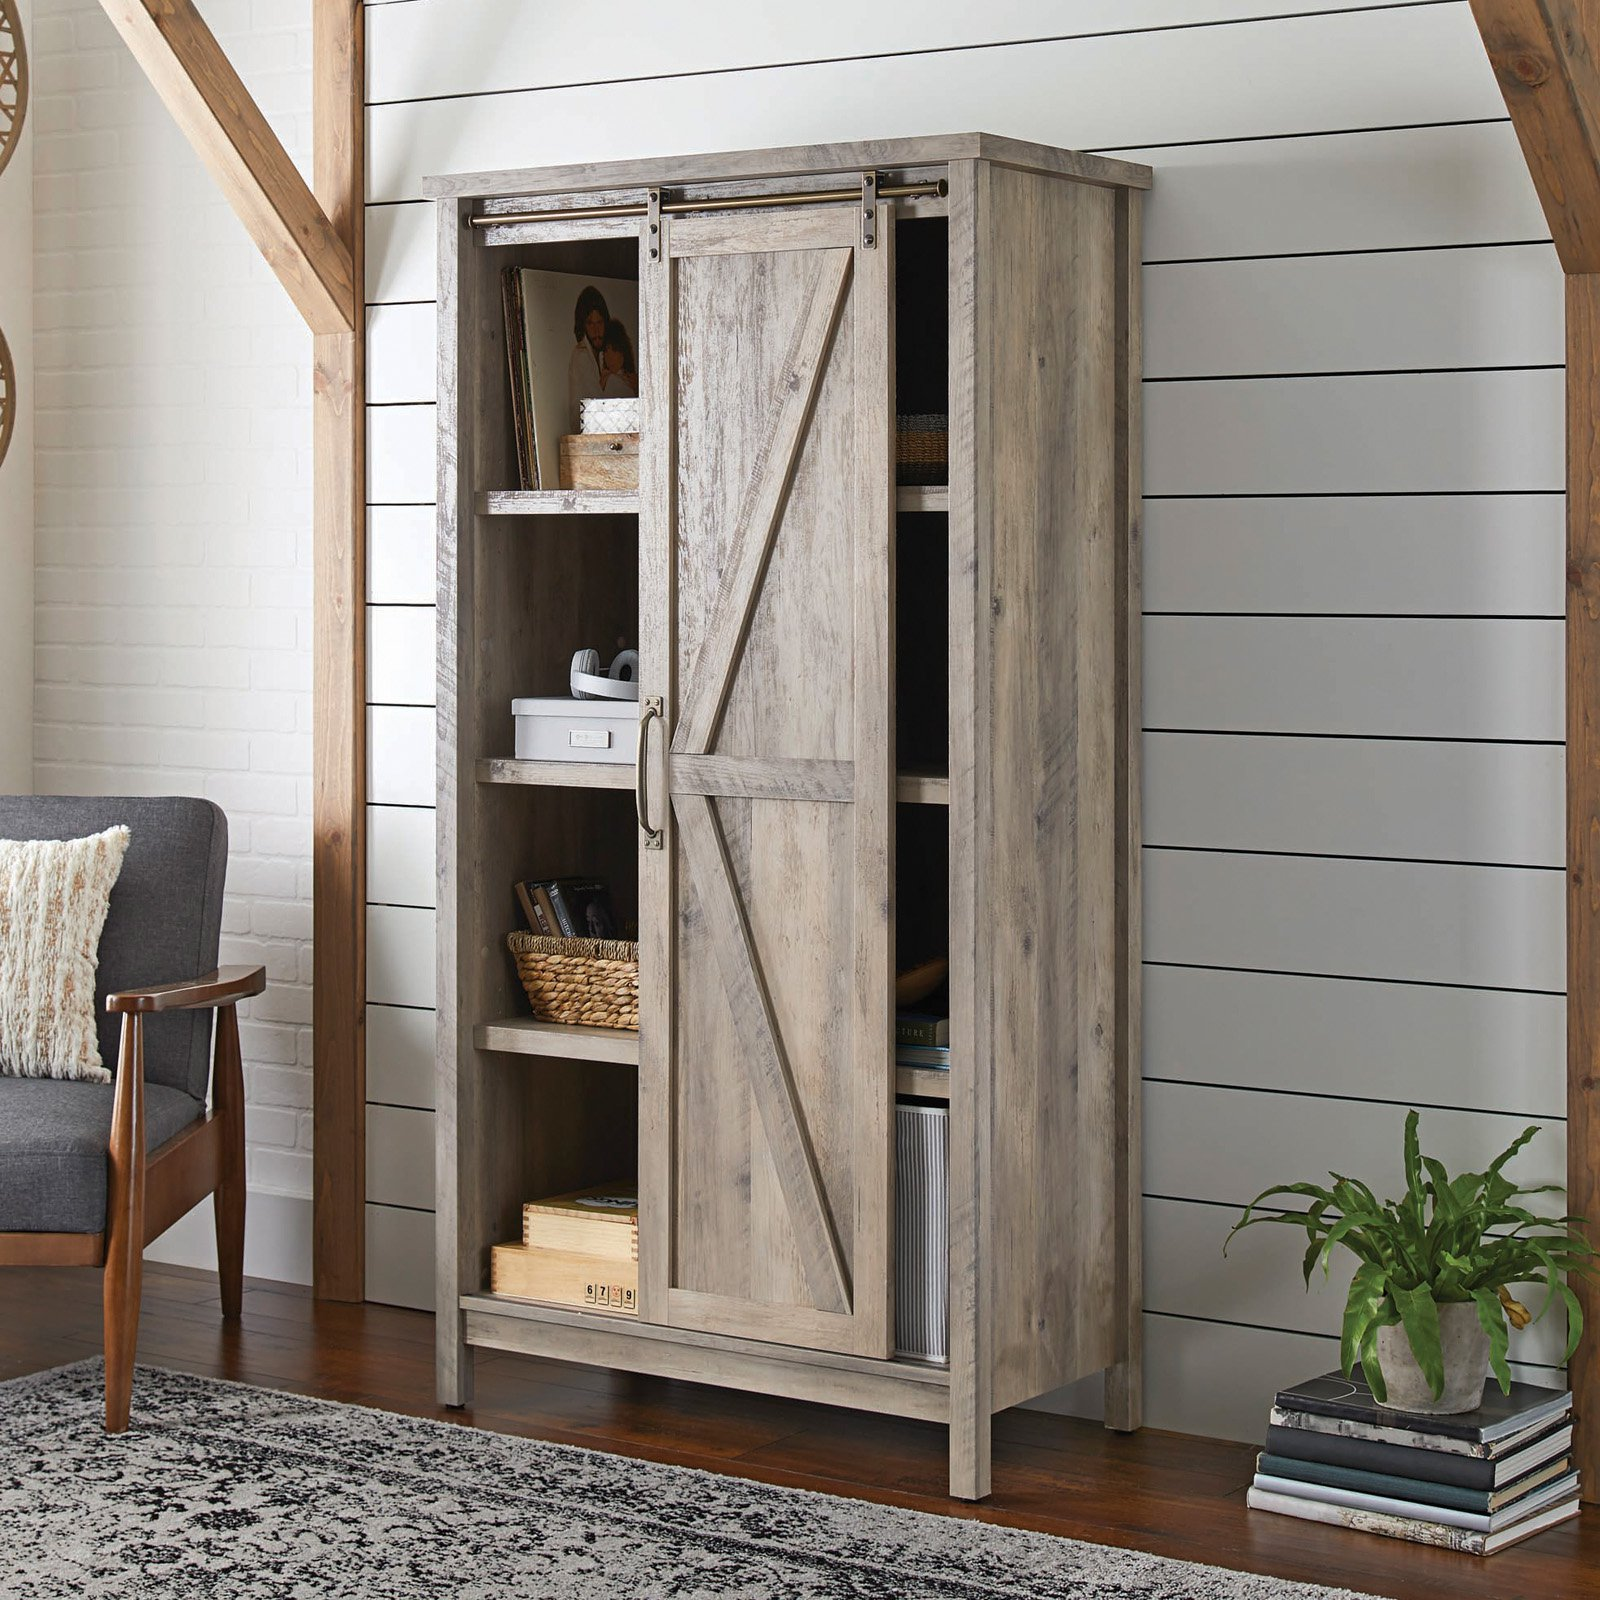 "Better Homes & Gardens 66"" Modern Farmhouse Storage Bookcase Cabinet, Rustic Gray Finish"